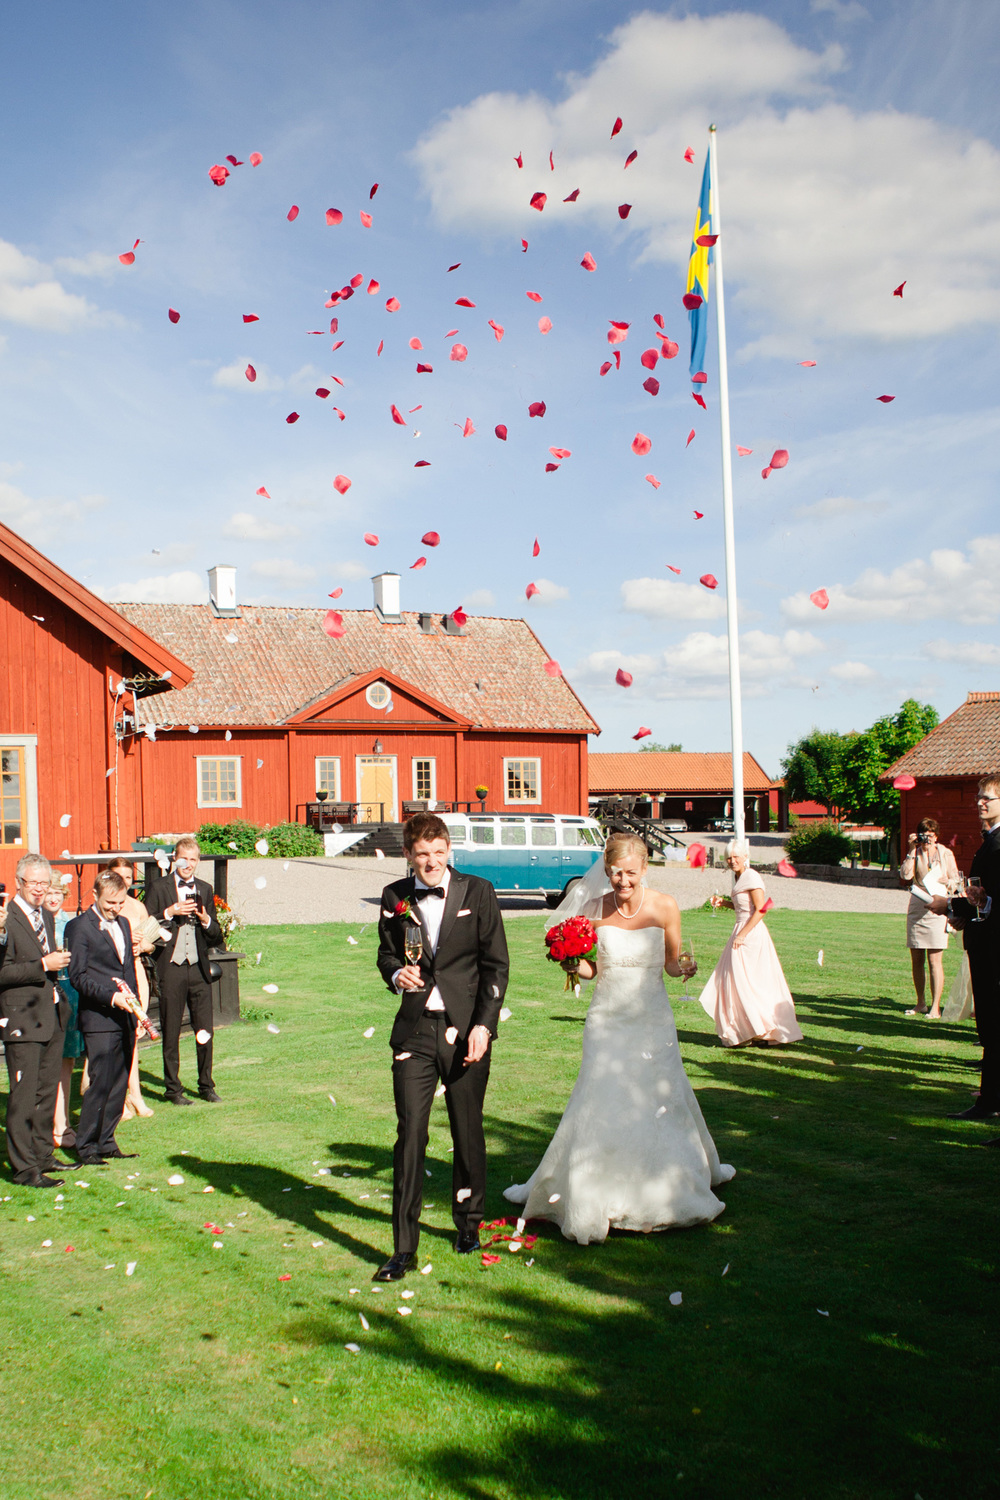 072-sweden-grytsberg-wedding-photographer.jpg